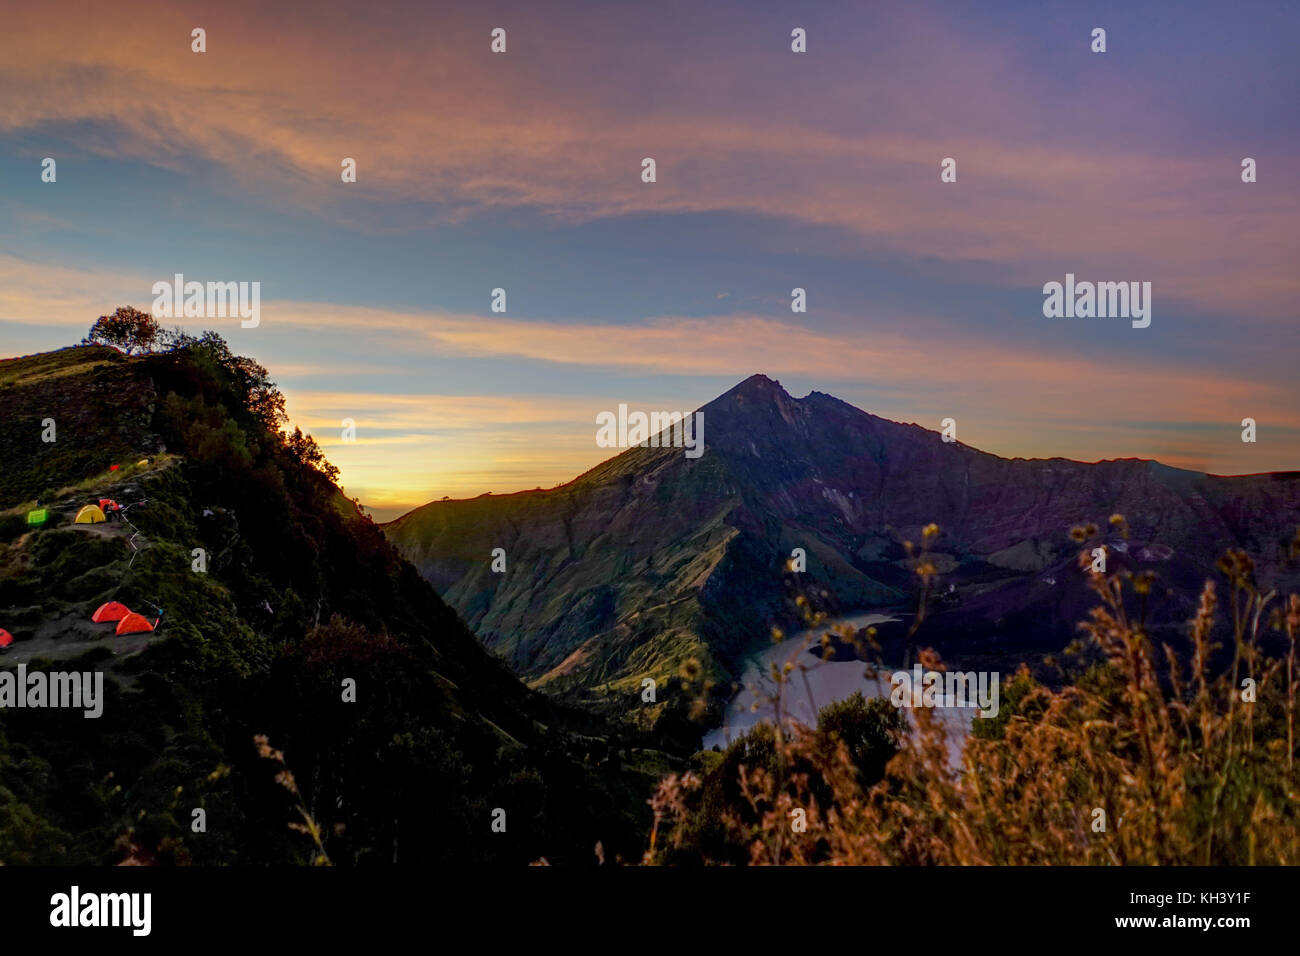 Sunrise Mount Rinjani vulcano with tents Lombok Indonesia - Stock Image